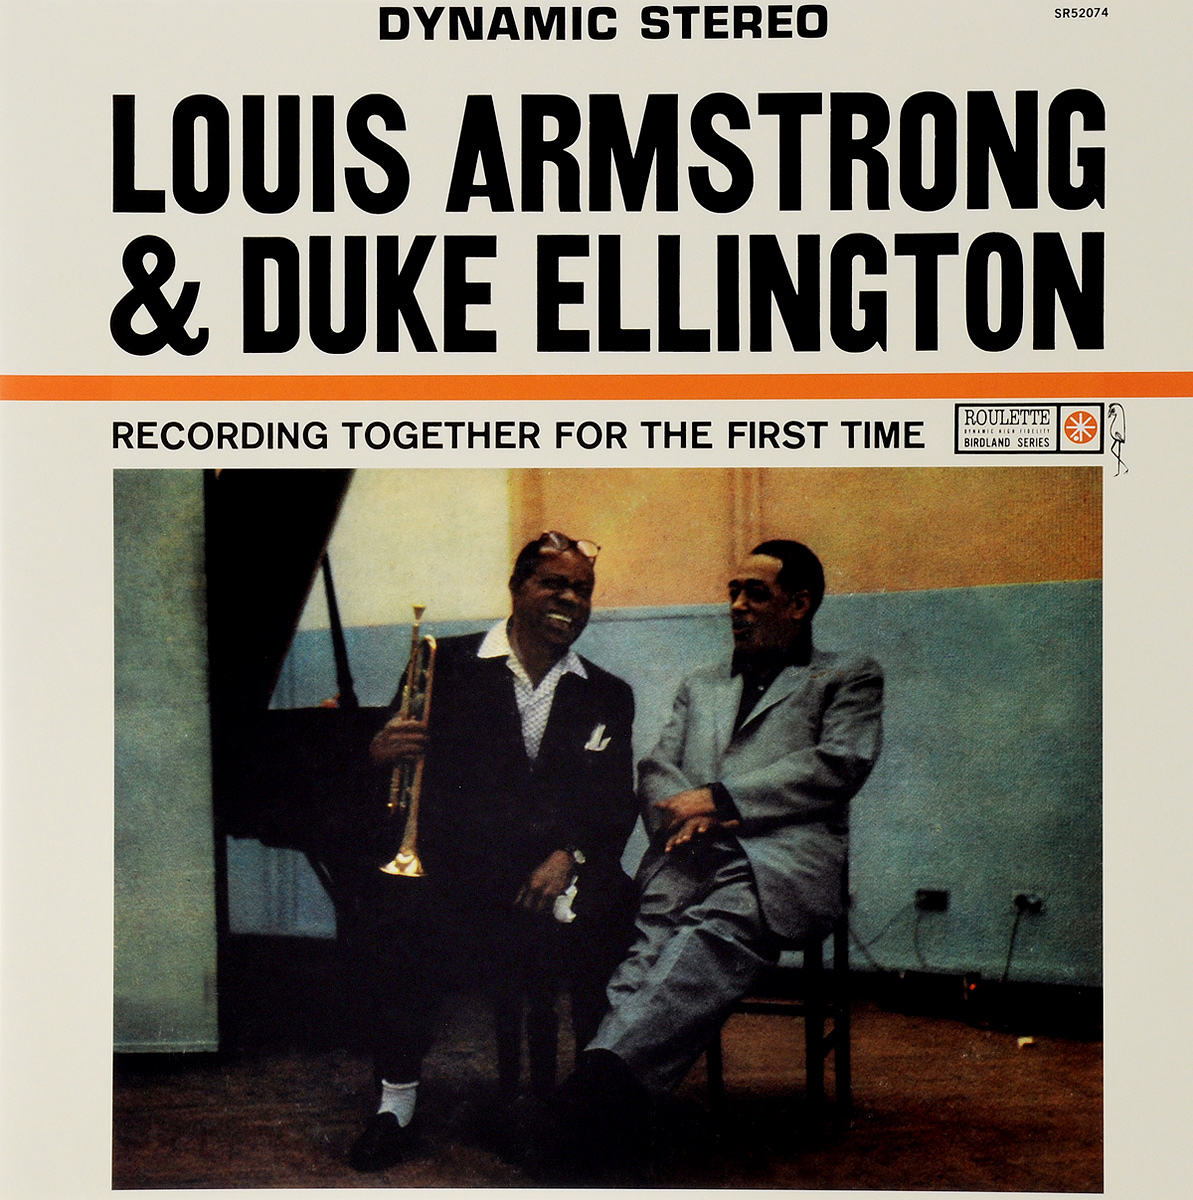 цена на Луи Армстронг,Дюк Эллингтон Louis Armstrong & Duke Ellington. Together For The First Time (LP)